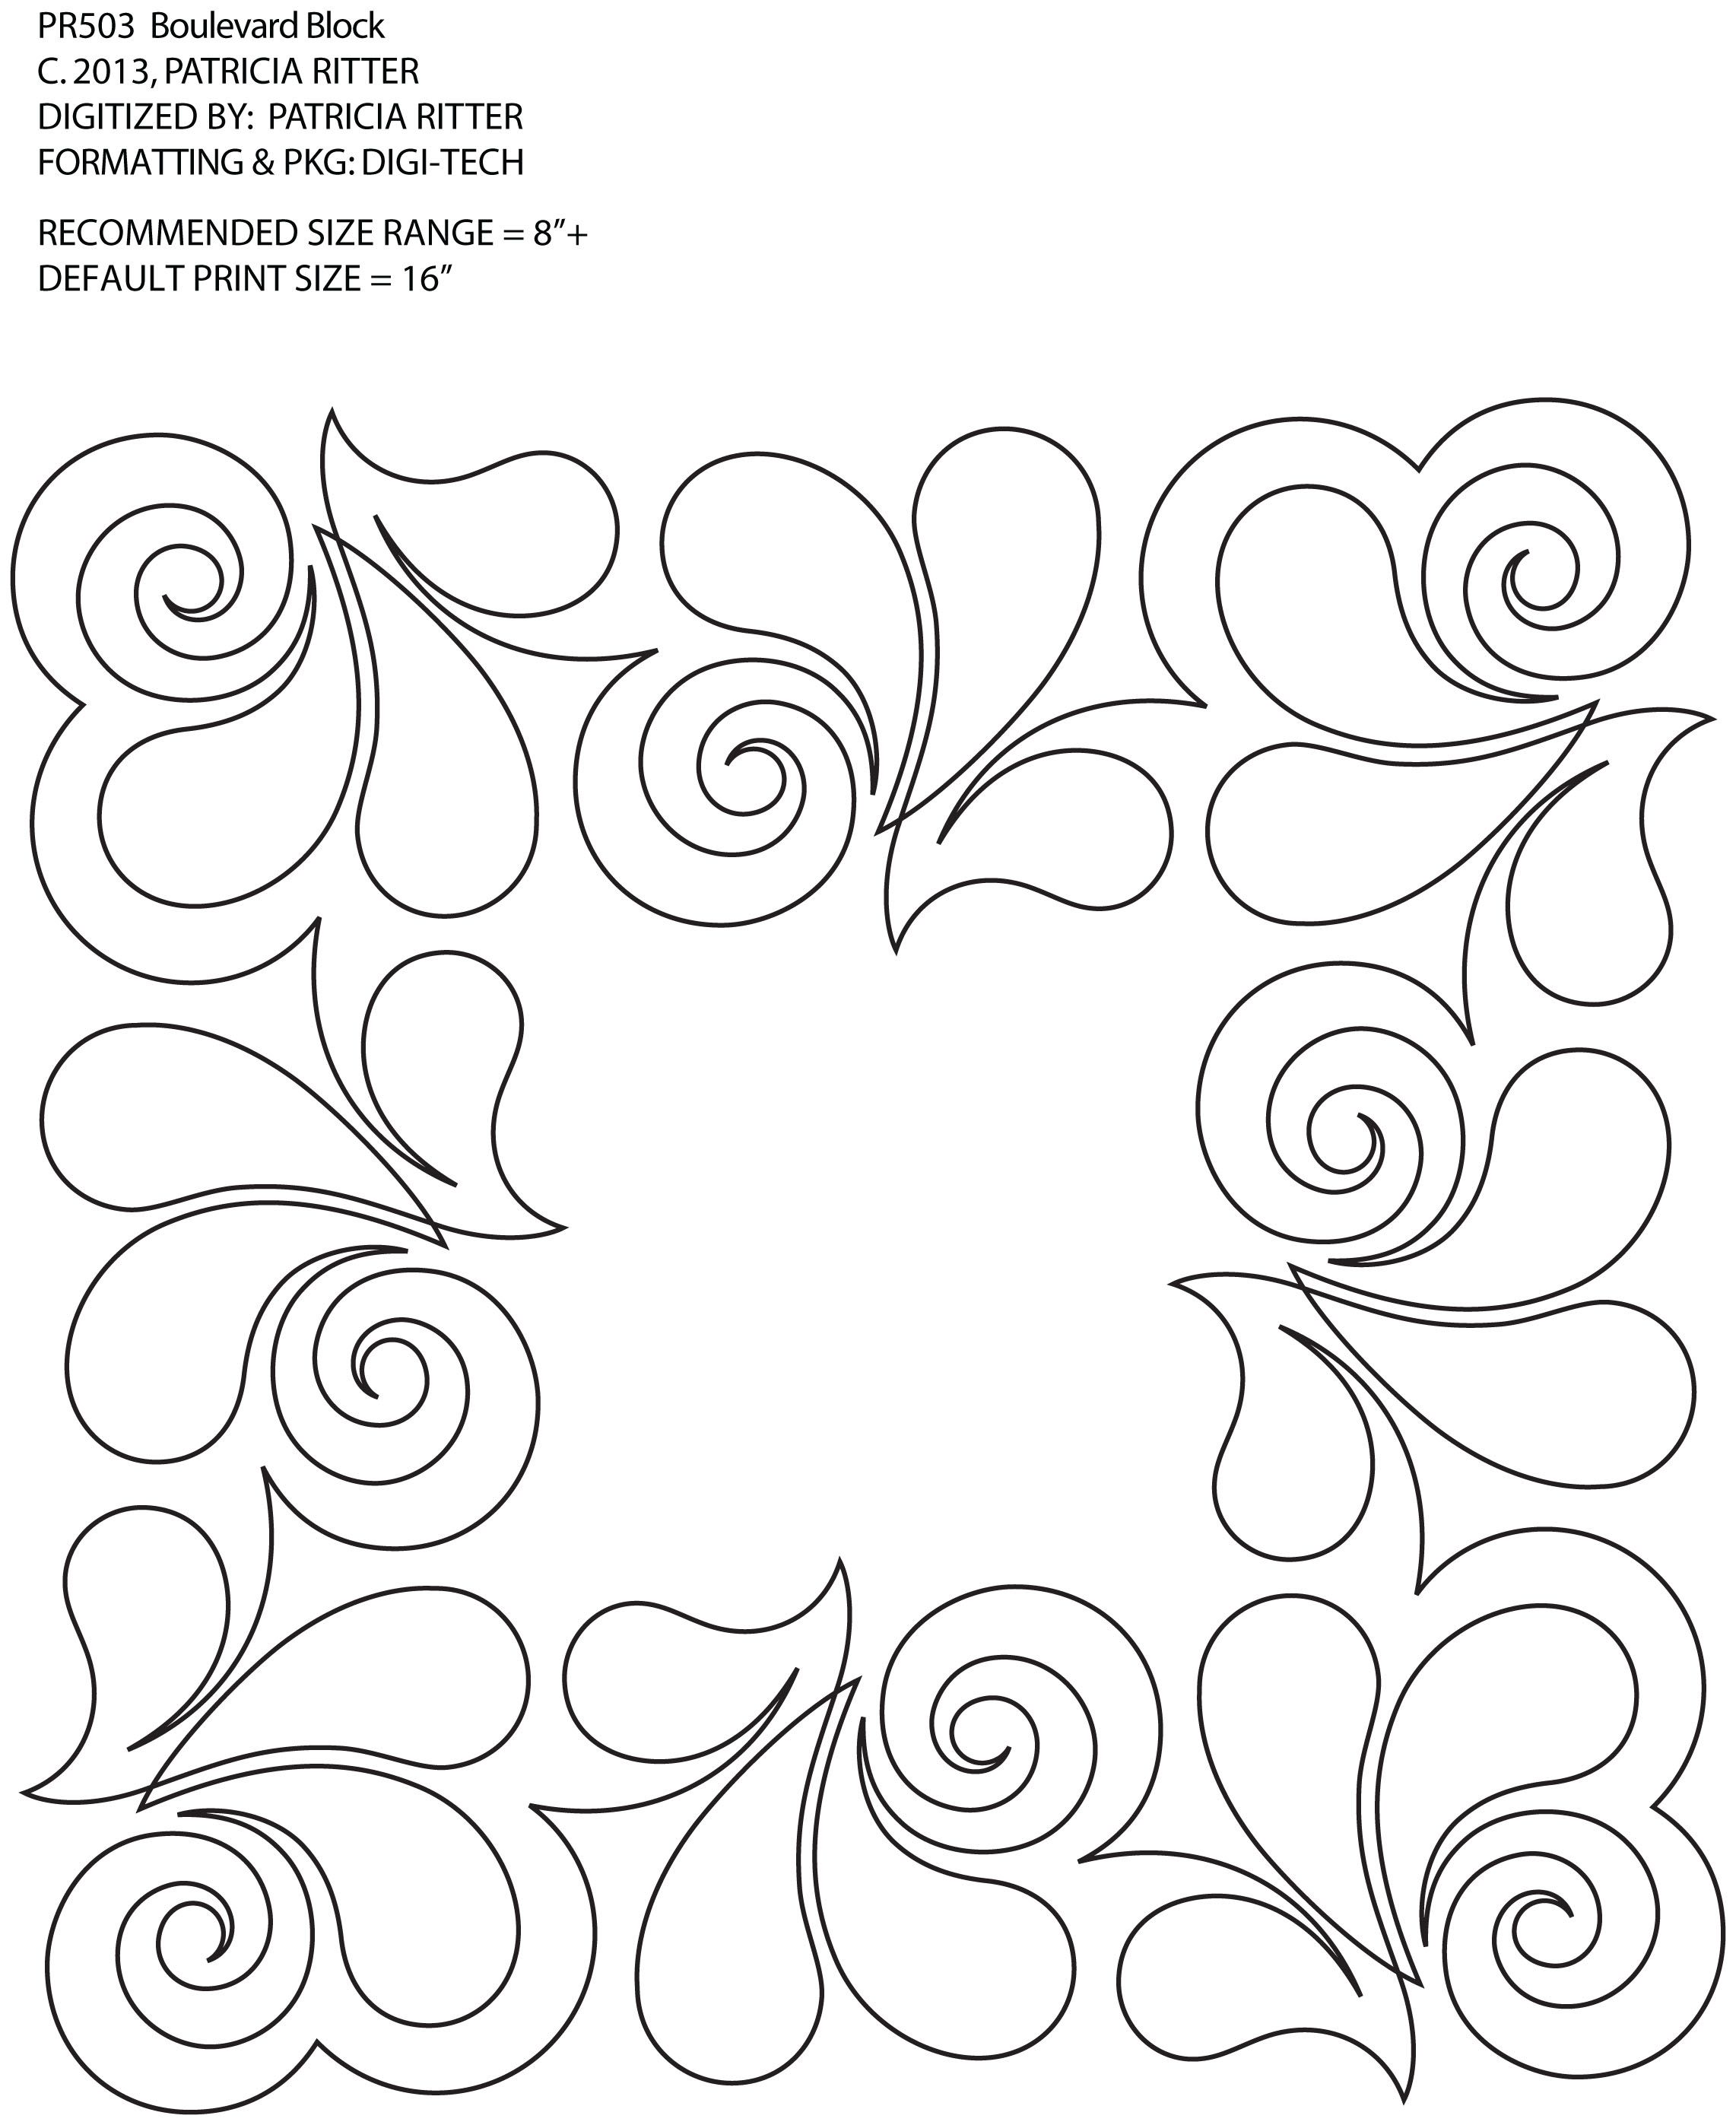 Pin By Amy Koepplin Hedstrom On Pantograph And Digital Quilting Designs Quilting Stitch Patterns Machine Quilting Designs Machine Quilting Patterns